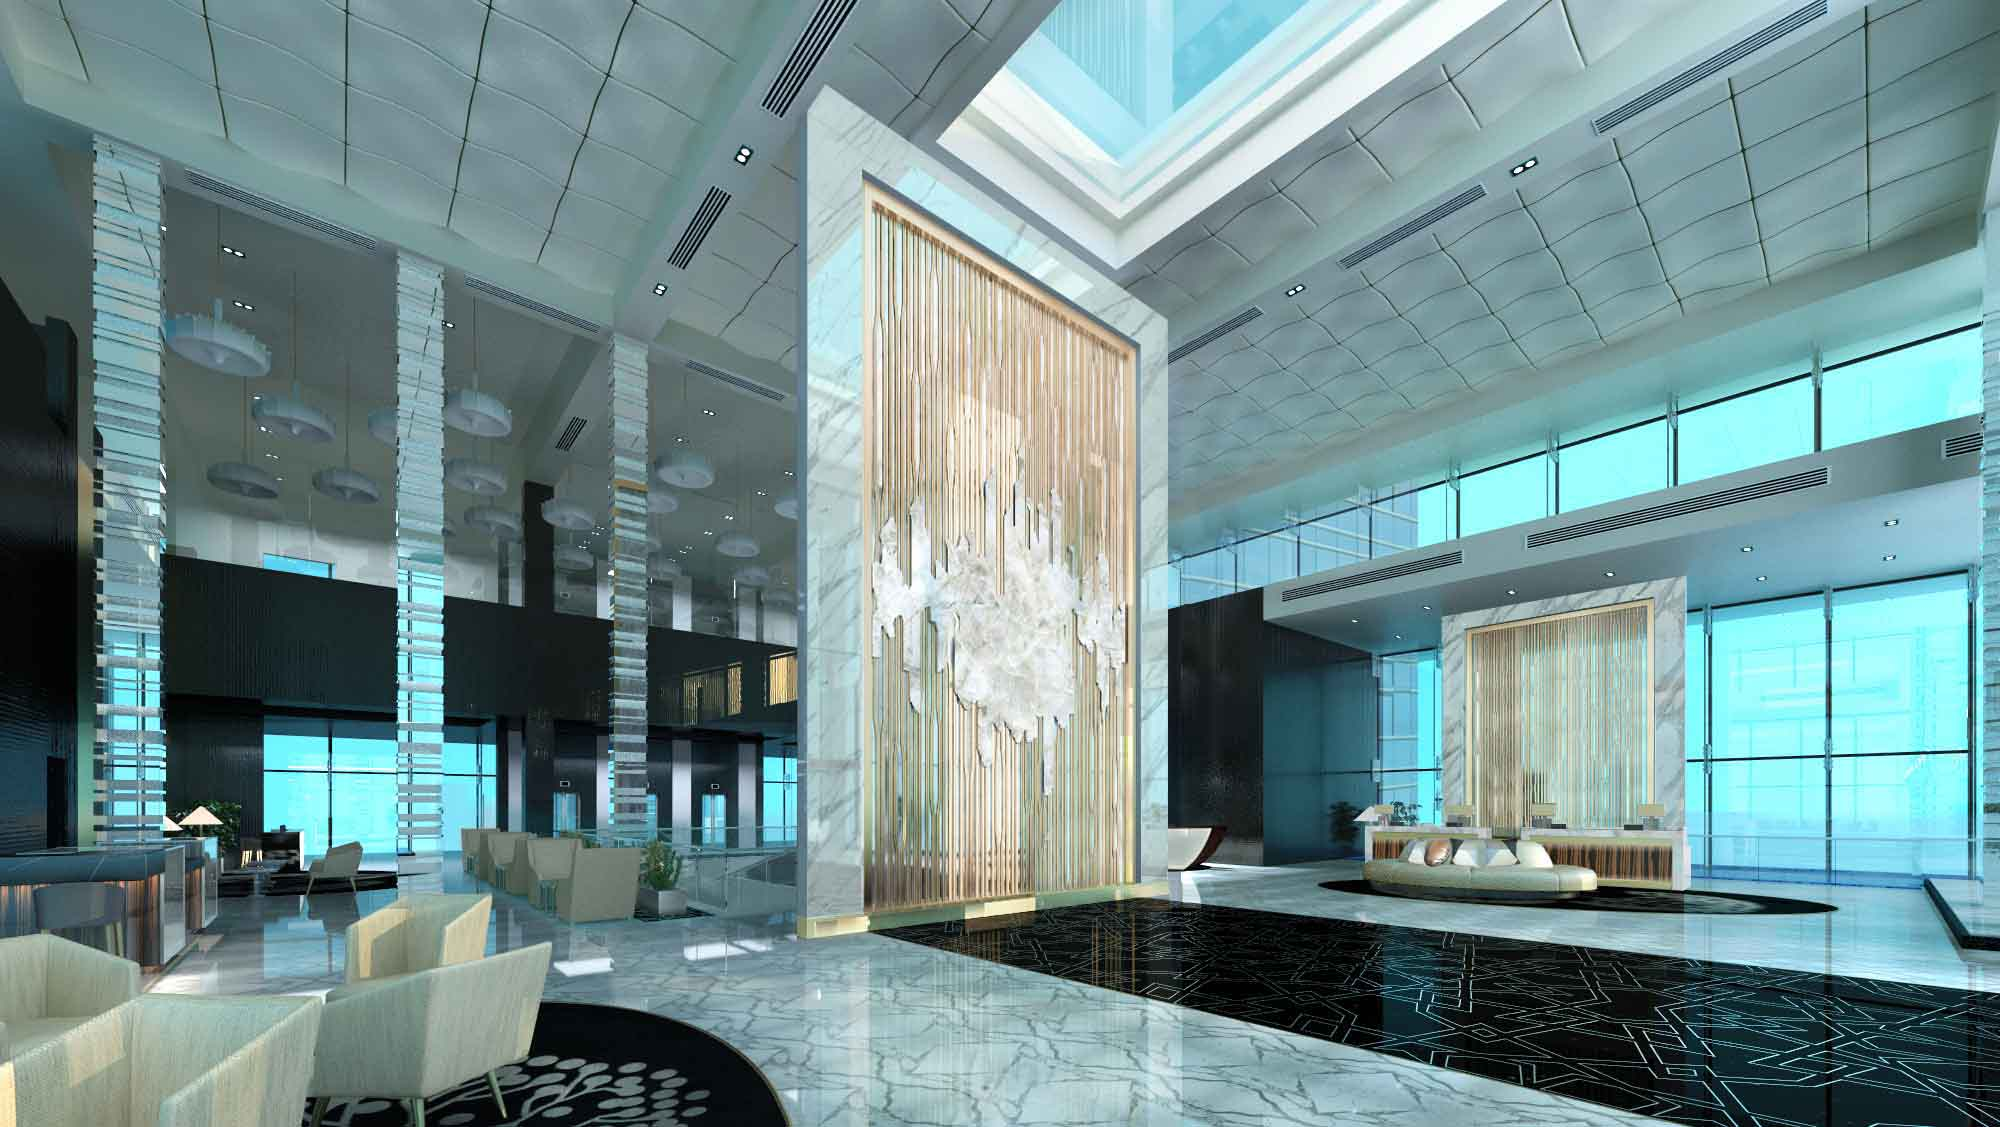 Fit out project fairmont hotel abu dhabi finasi llc for Hotel near dubai design district